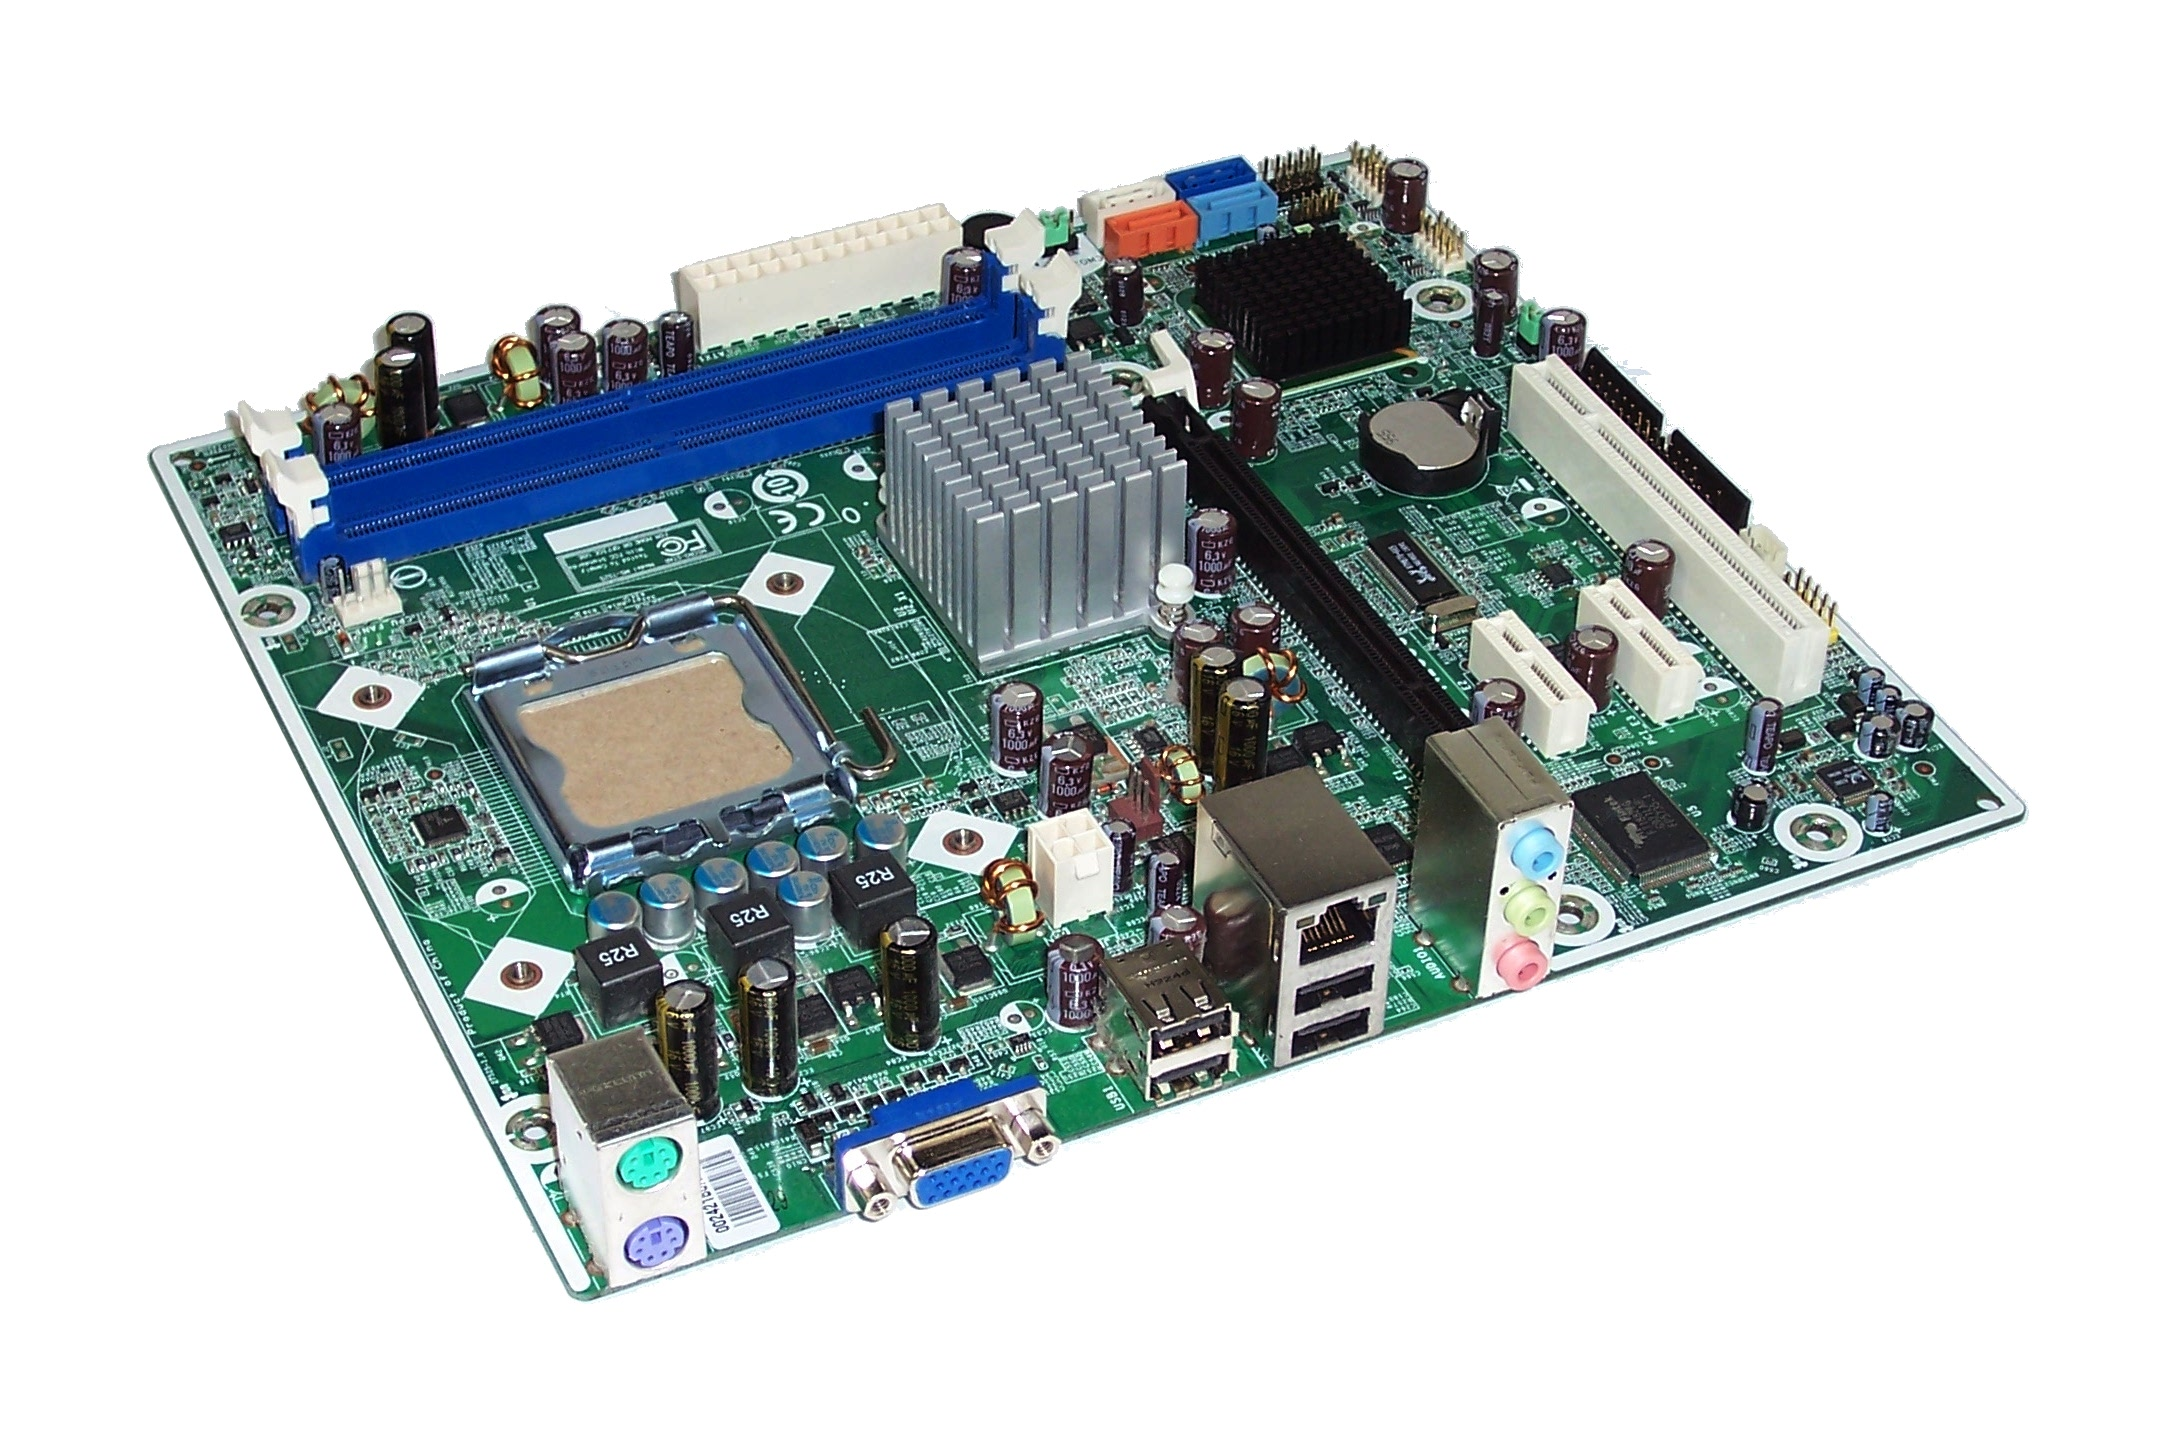 HP 464517-002 dx2420 Minitower LGA775 Motherboard - SPS 480429-001